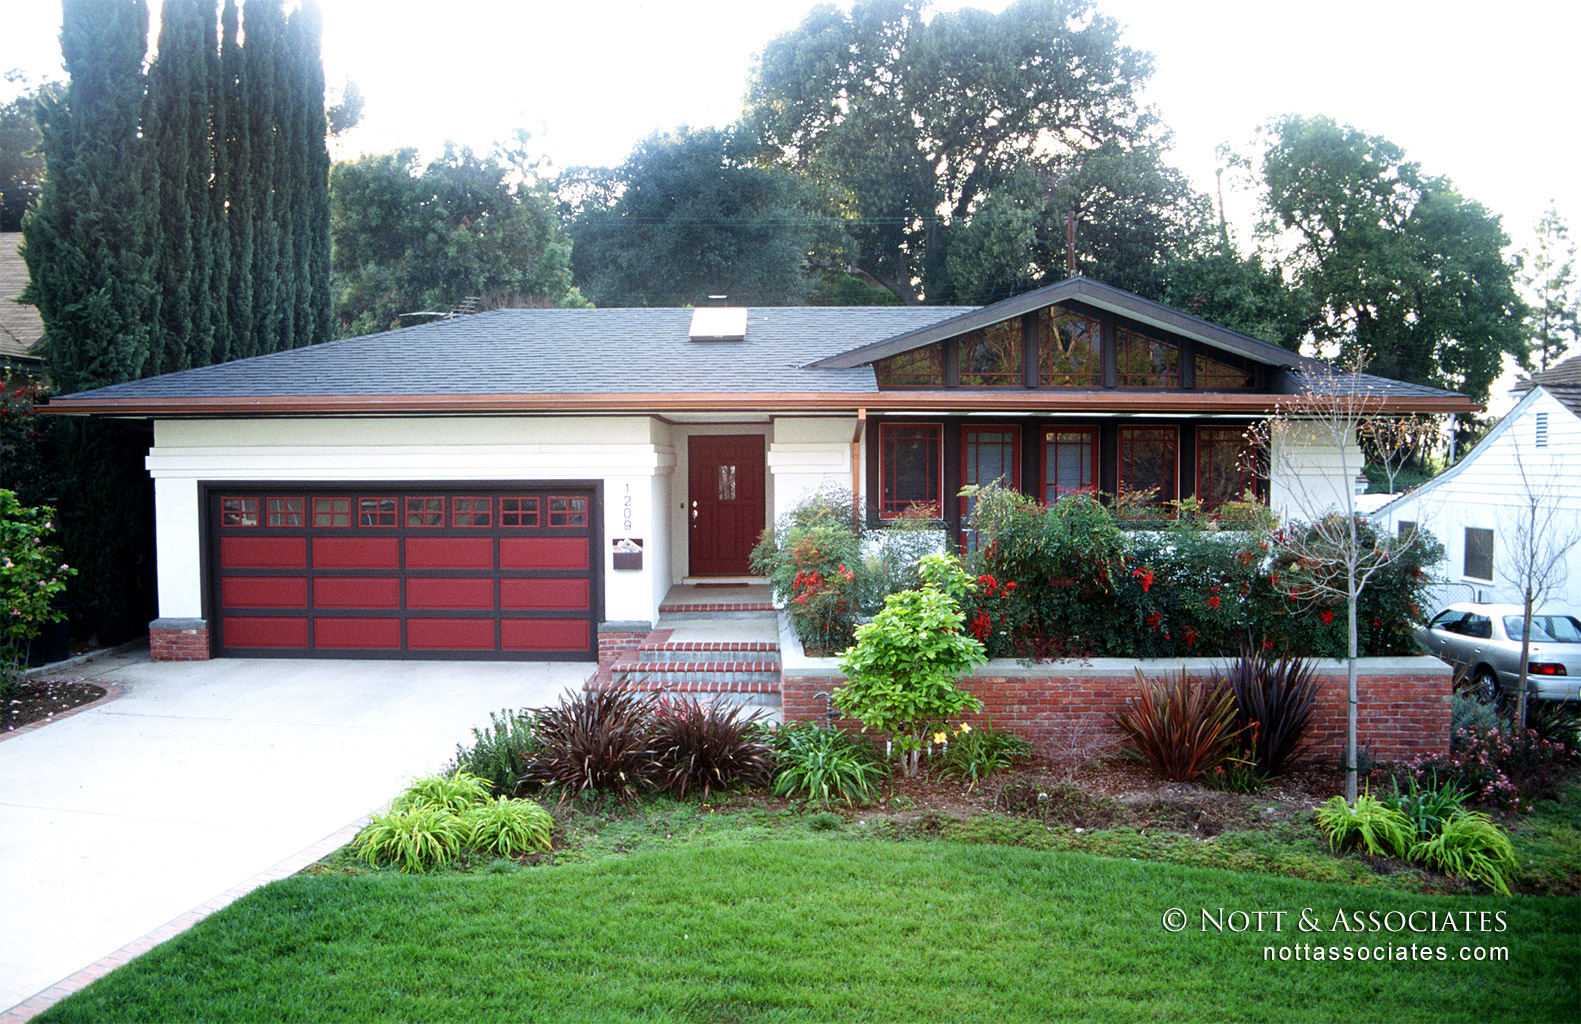 Transformed 1940's Ranch style home with striking entry.